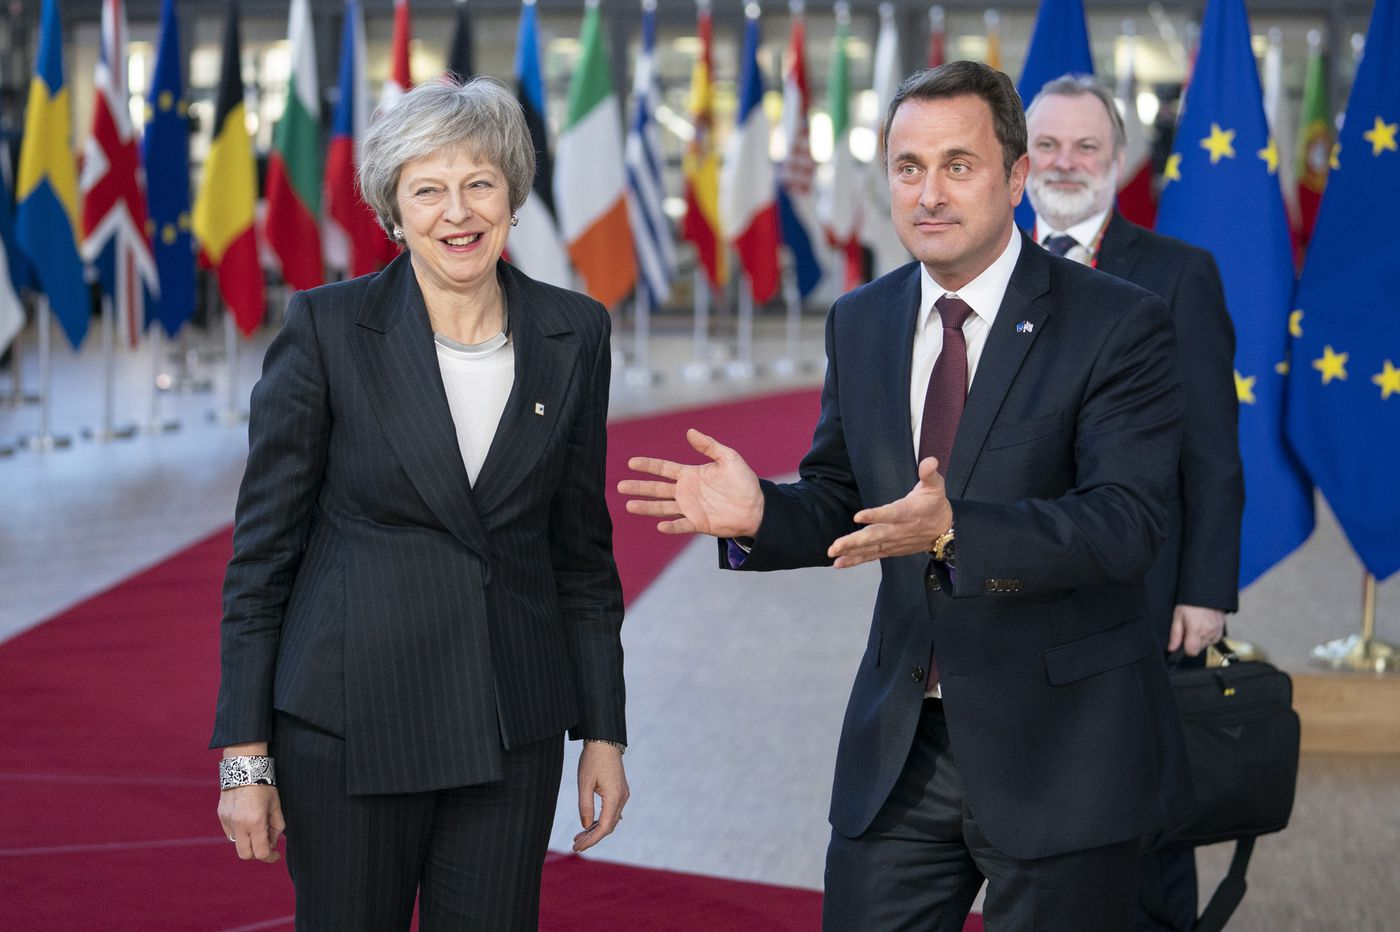 As E.U. leaders gather in Brussels over Brexit, Britain's May says no to reelection